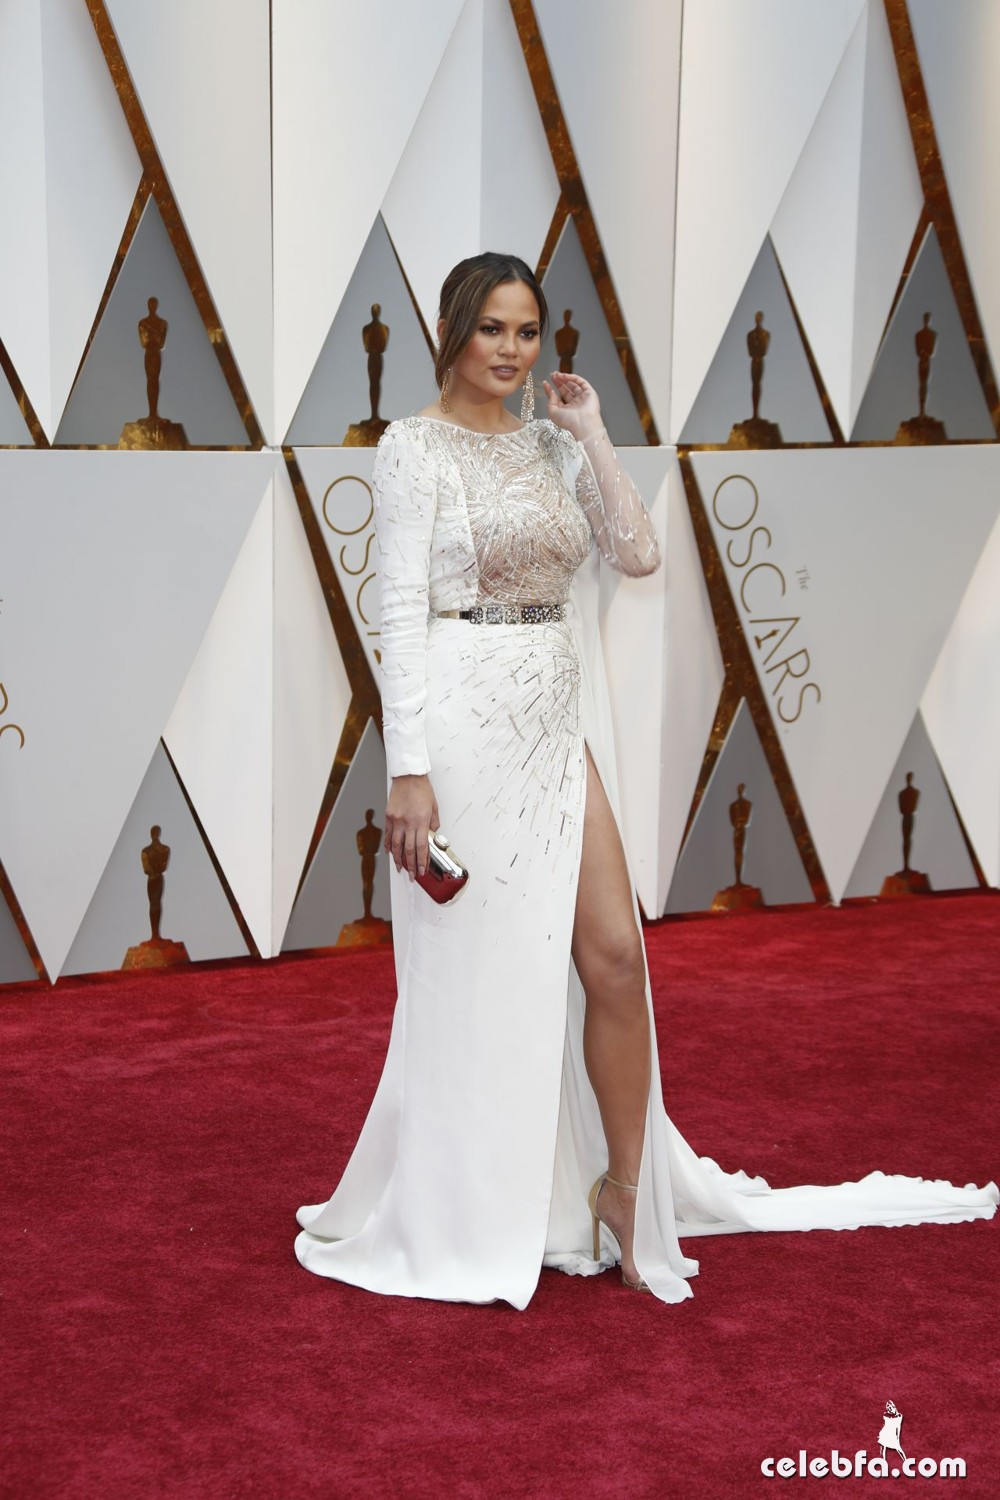 chrissy-teigen-oscars-2017-red-carpet-3